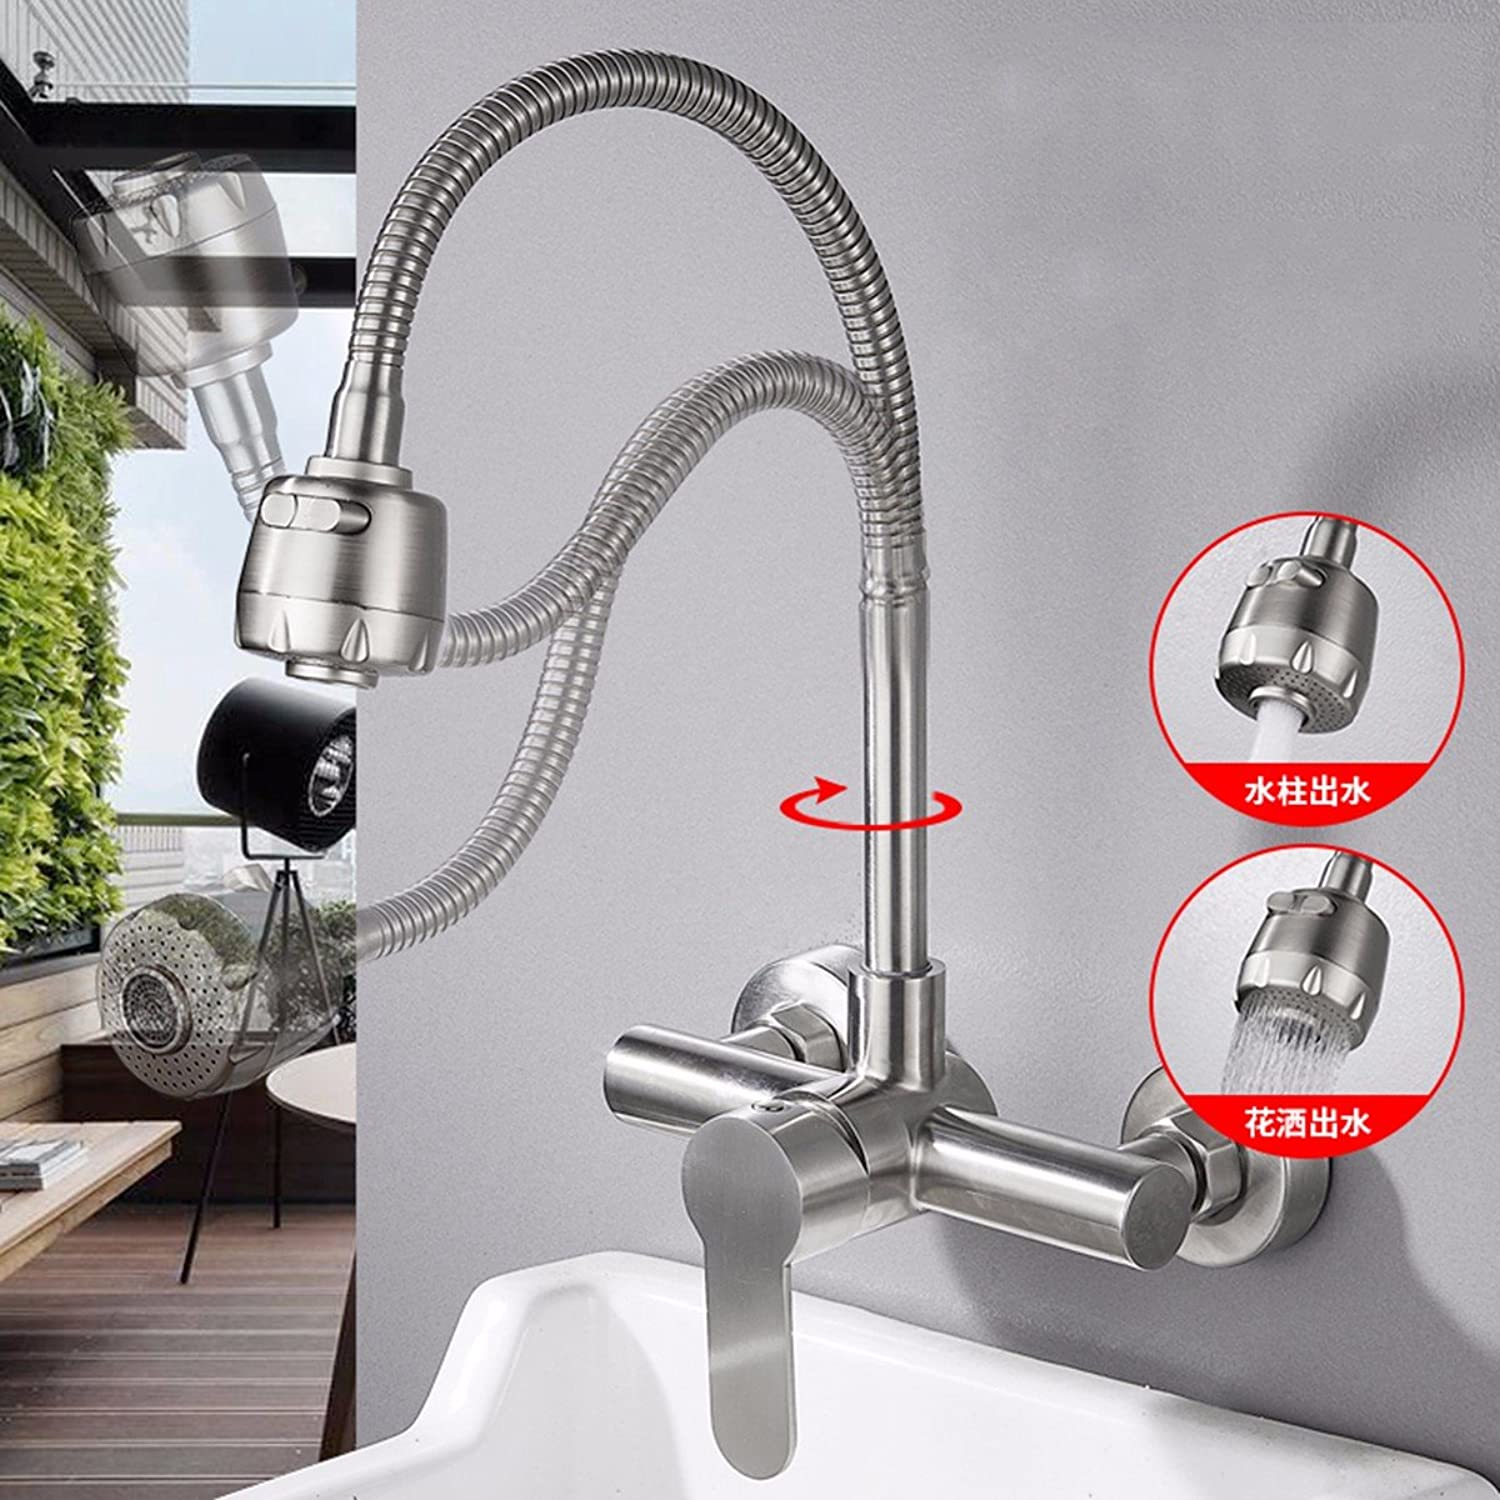 304 Stainless Steel Wall Type Kitchen Cold And Hot Tap Water Faucet,D